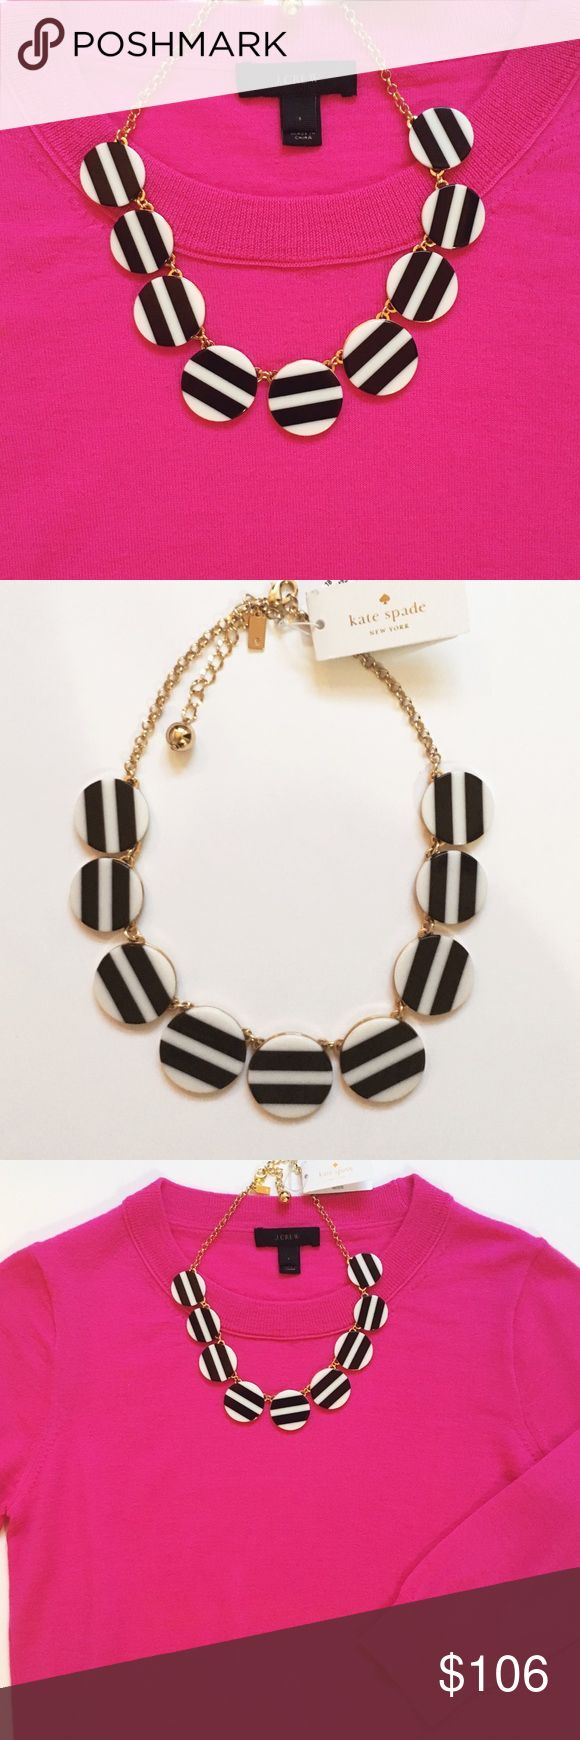 Kate Spade Black and White Stripe Necklace Kate Spade Black and White Stripe Necklace with Gold 14k plates gold hardware. Adjustable lobster claw. New with tags! kate spade Jewelry Necklaces